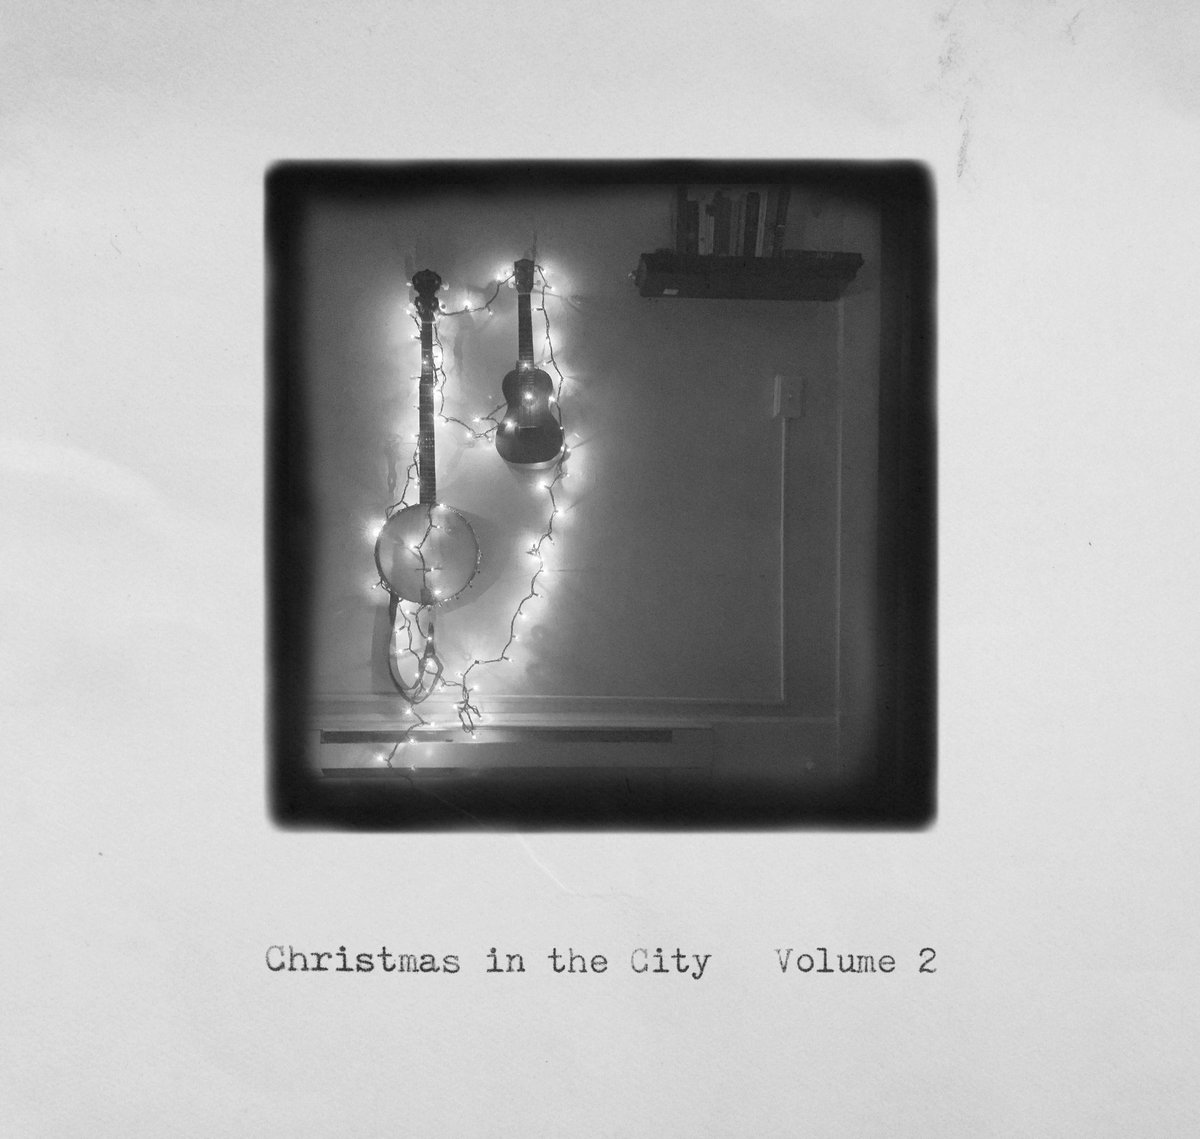 Bill Fried - Happy Xmas (War is Over) @ 'Christmas in the City Vol. 2' album (11th ave records, 11thaverecords 11th avenue)